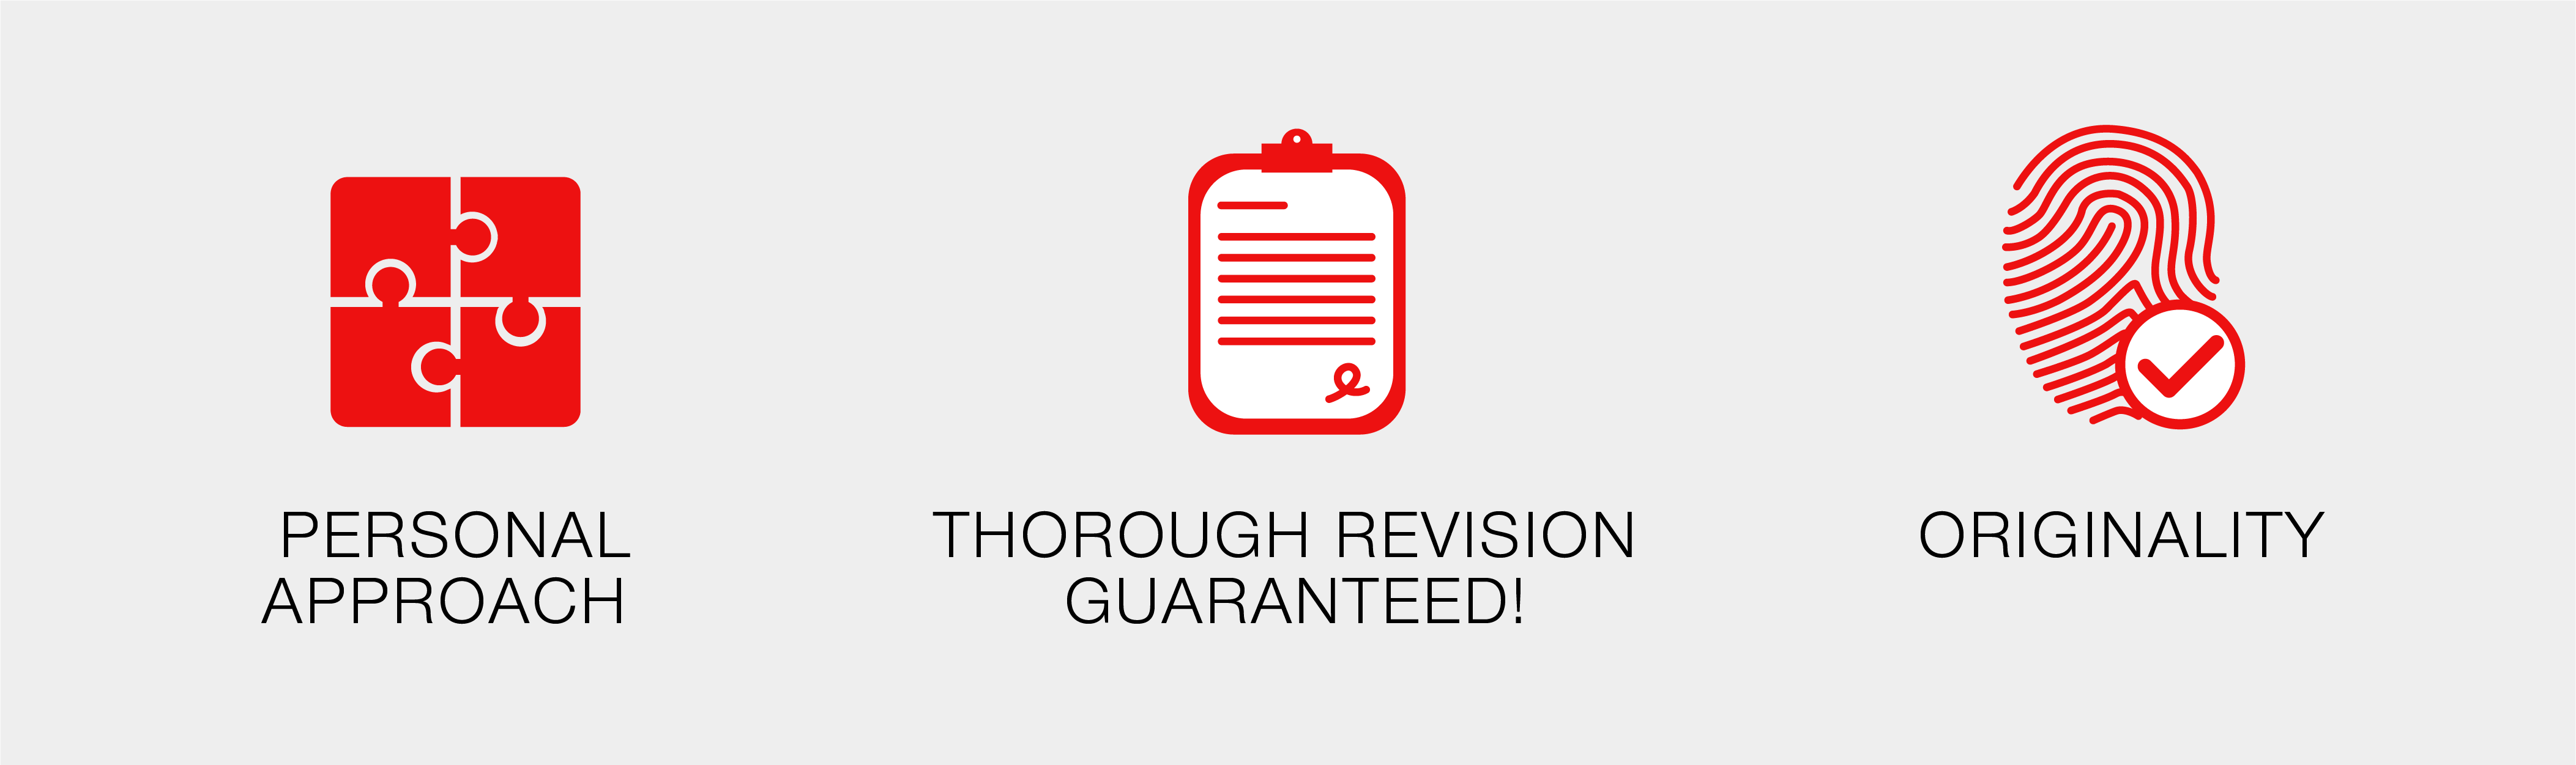 English Essay Structure  Essay On High School Dropouts also How To Write An Essay In High School Buy A Custom Essay For College  Freelancehouse An Essay About Health